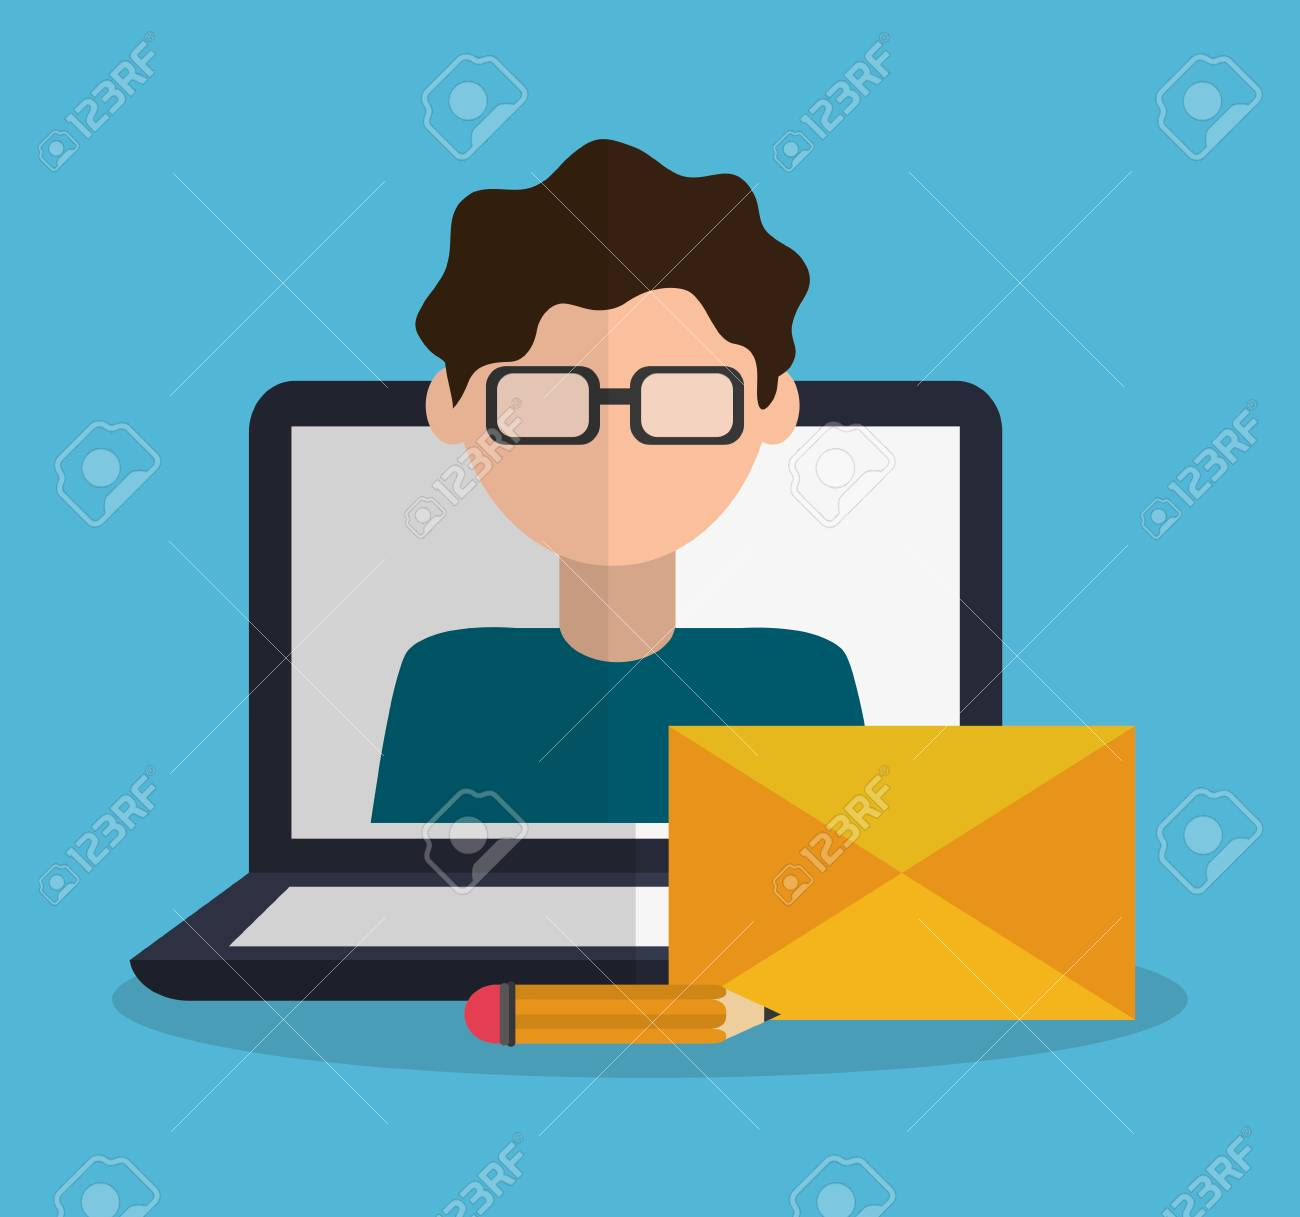 computer with instant messaging related icons image vector illustration